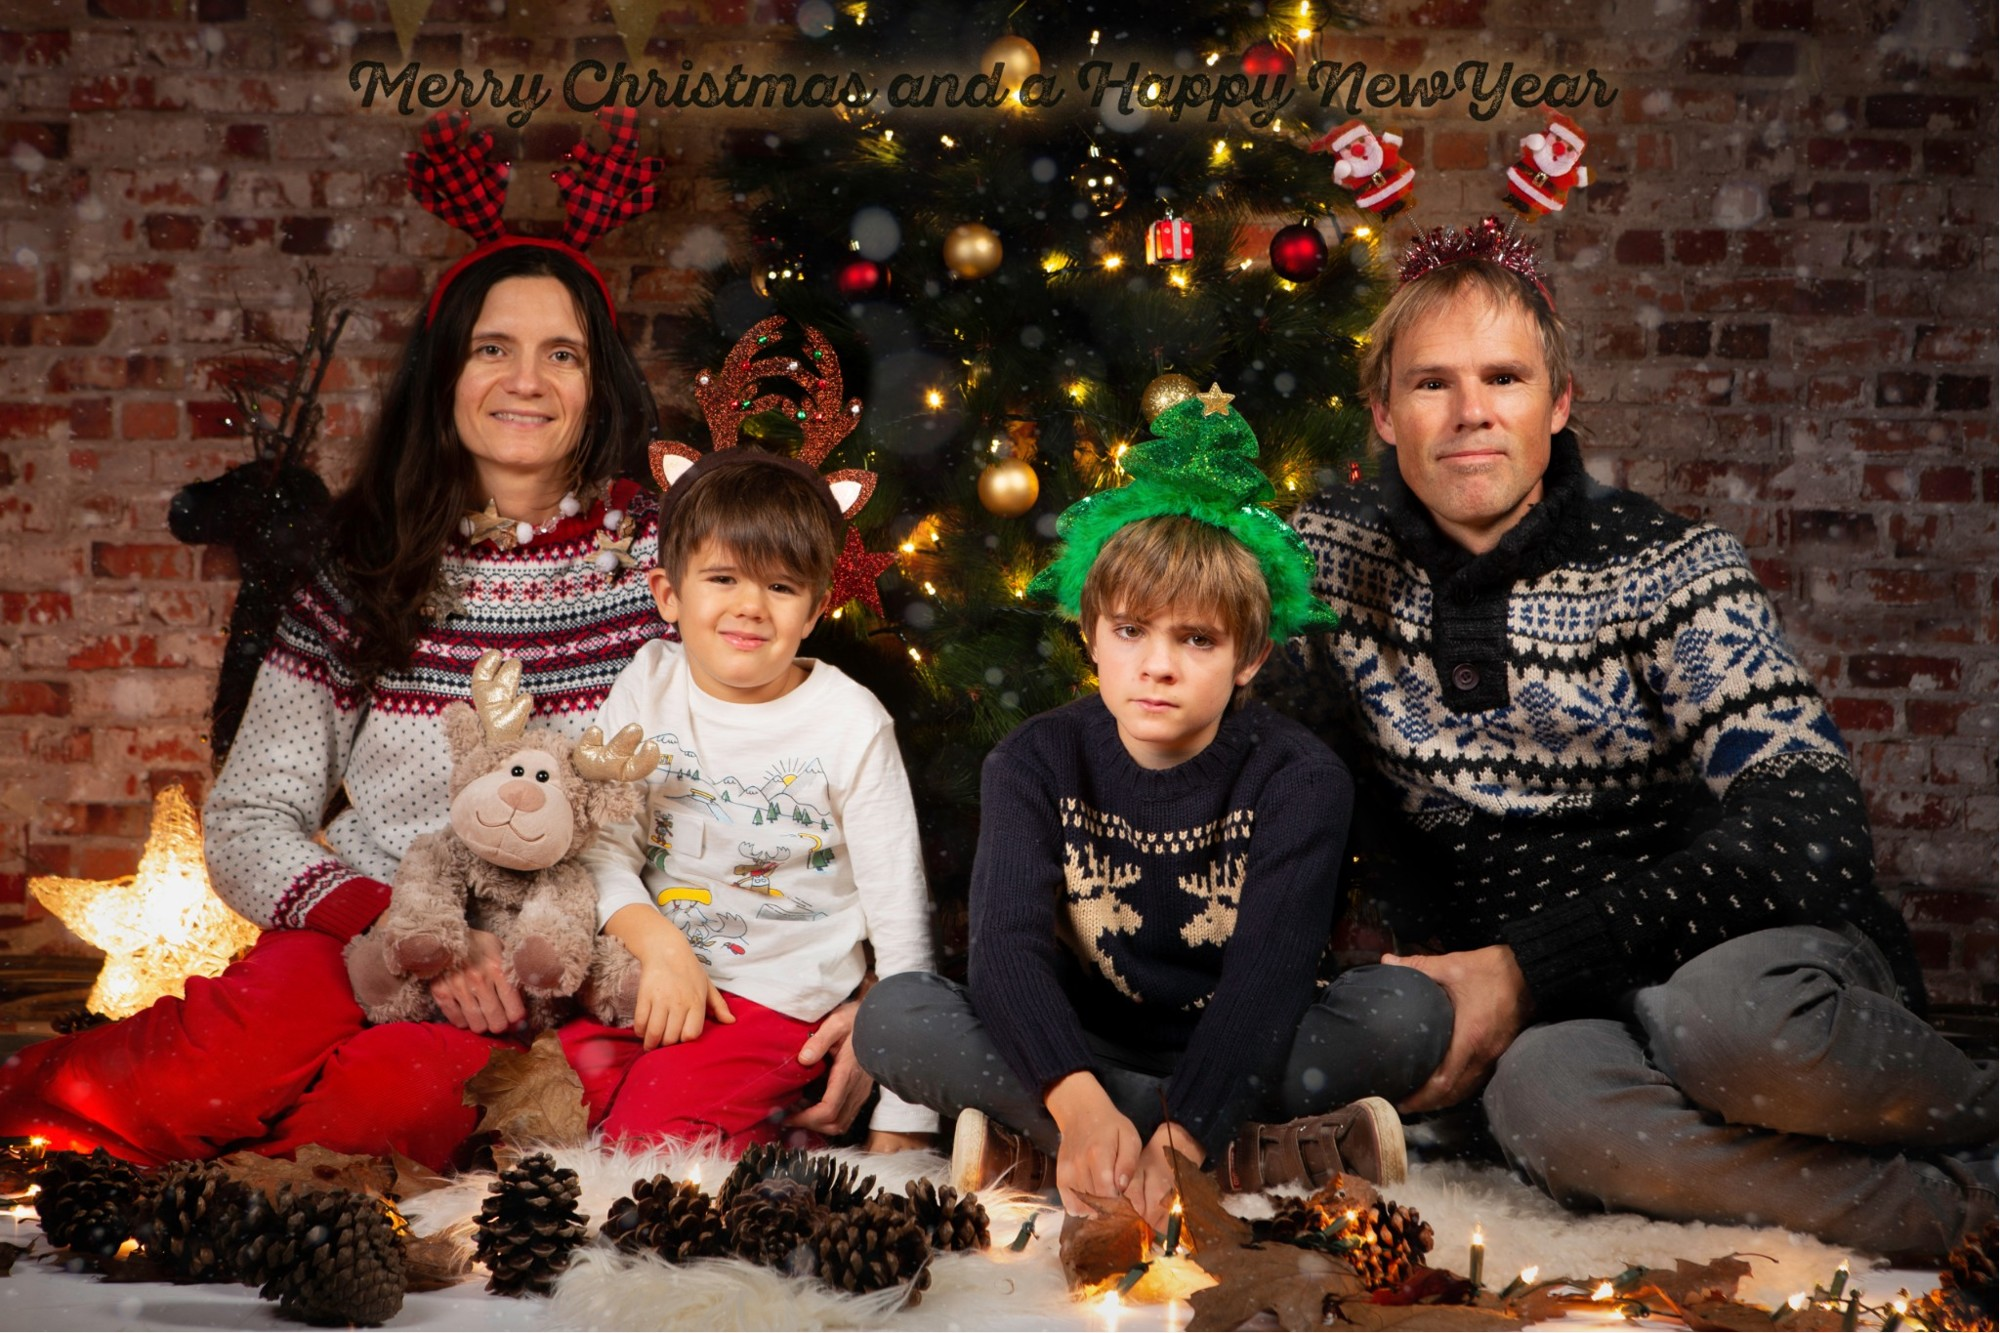 Merry Christmas Mini session. Kunst Photo & Art. Berango, Basque Country.